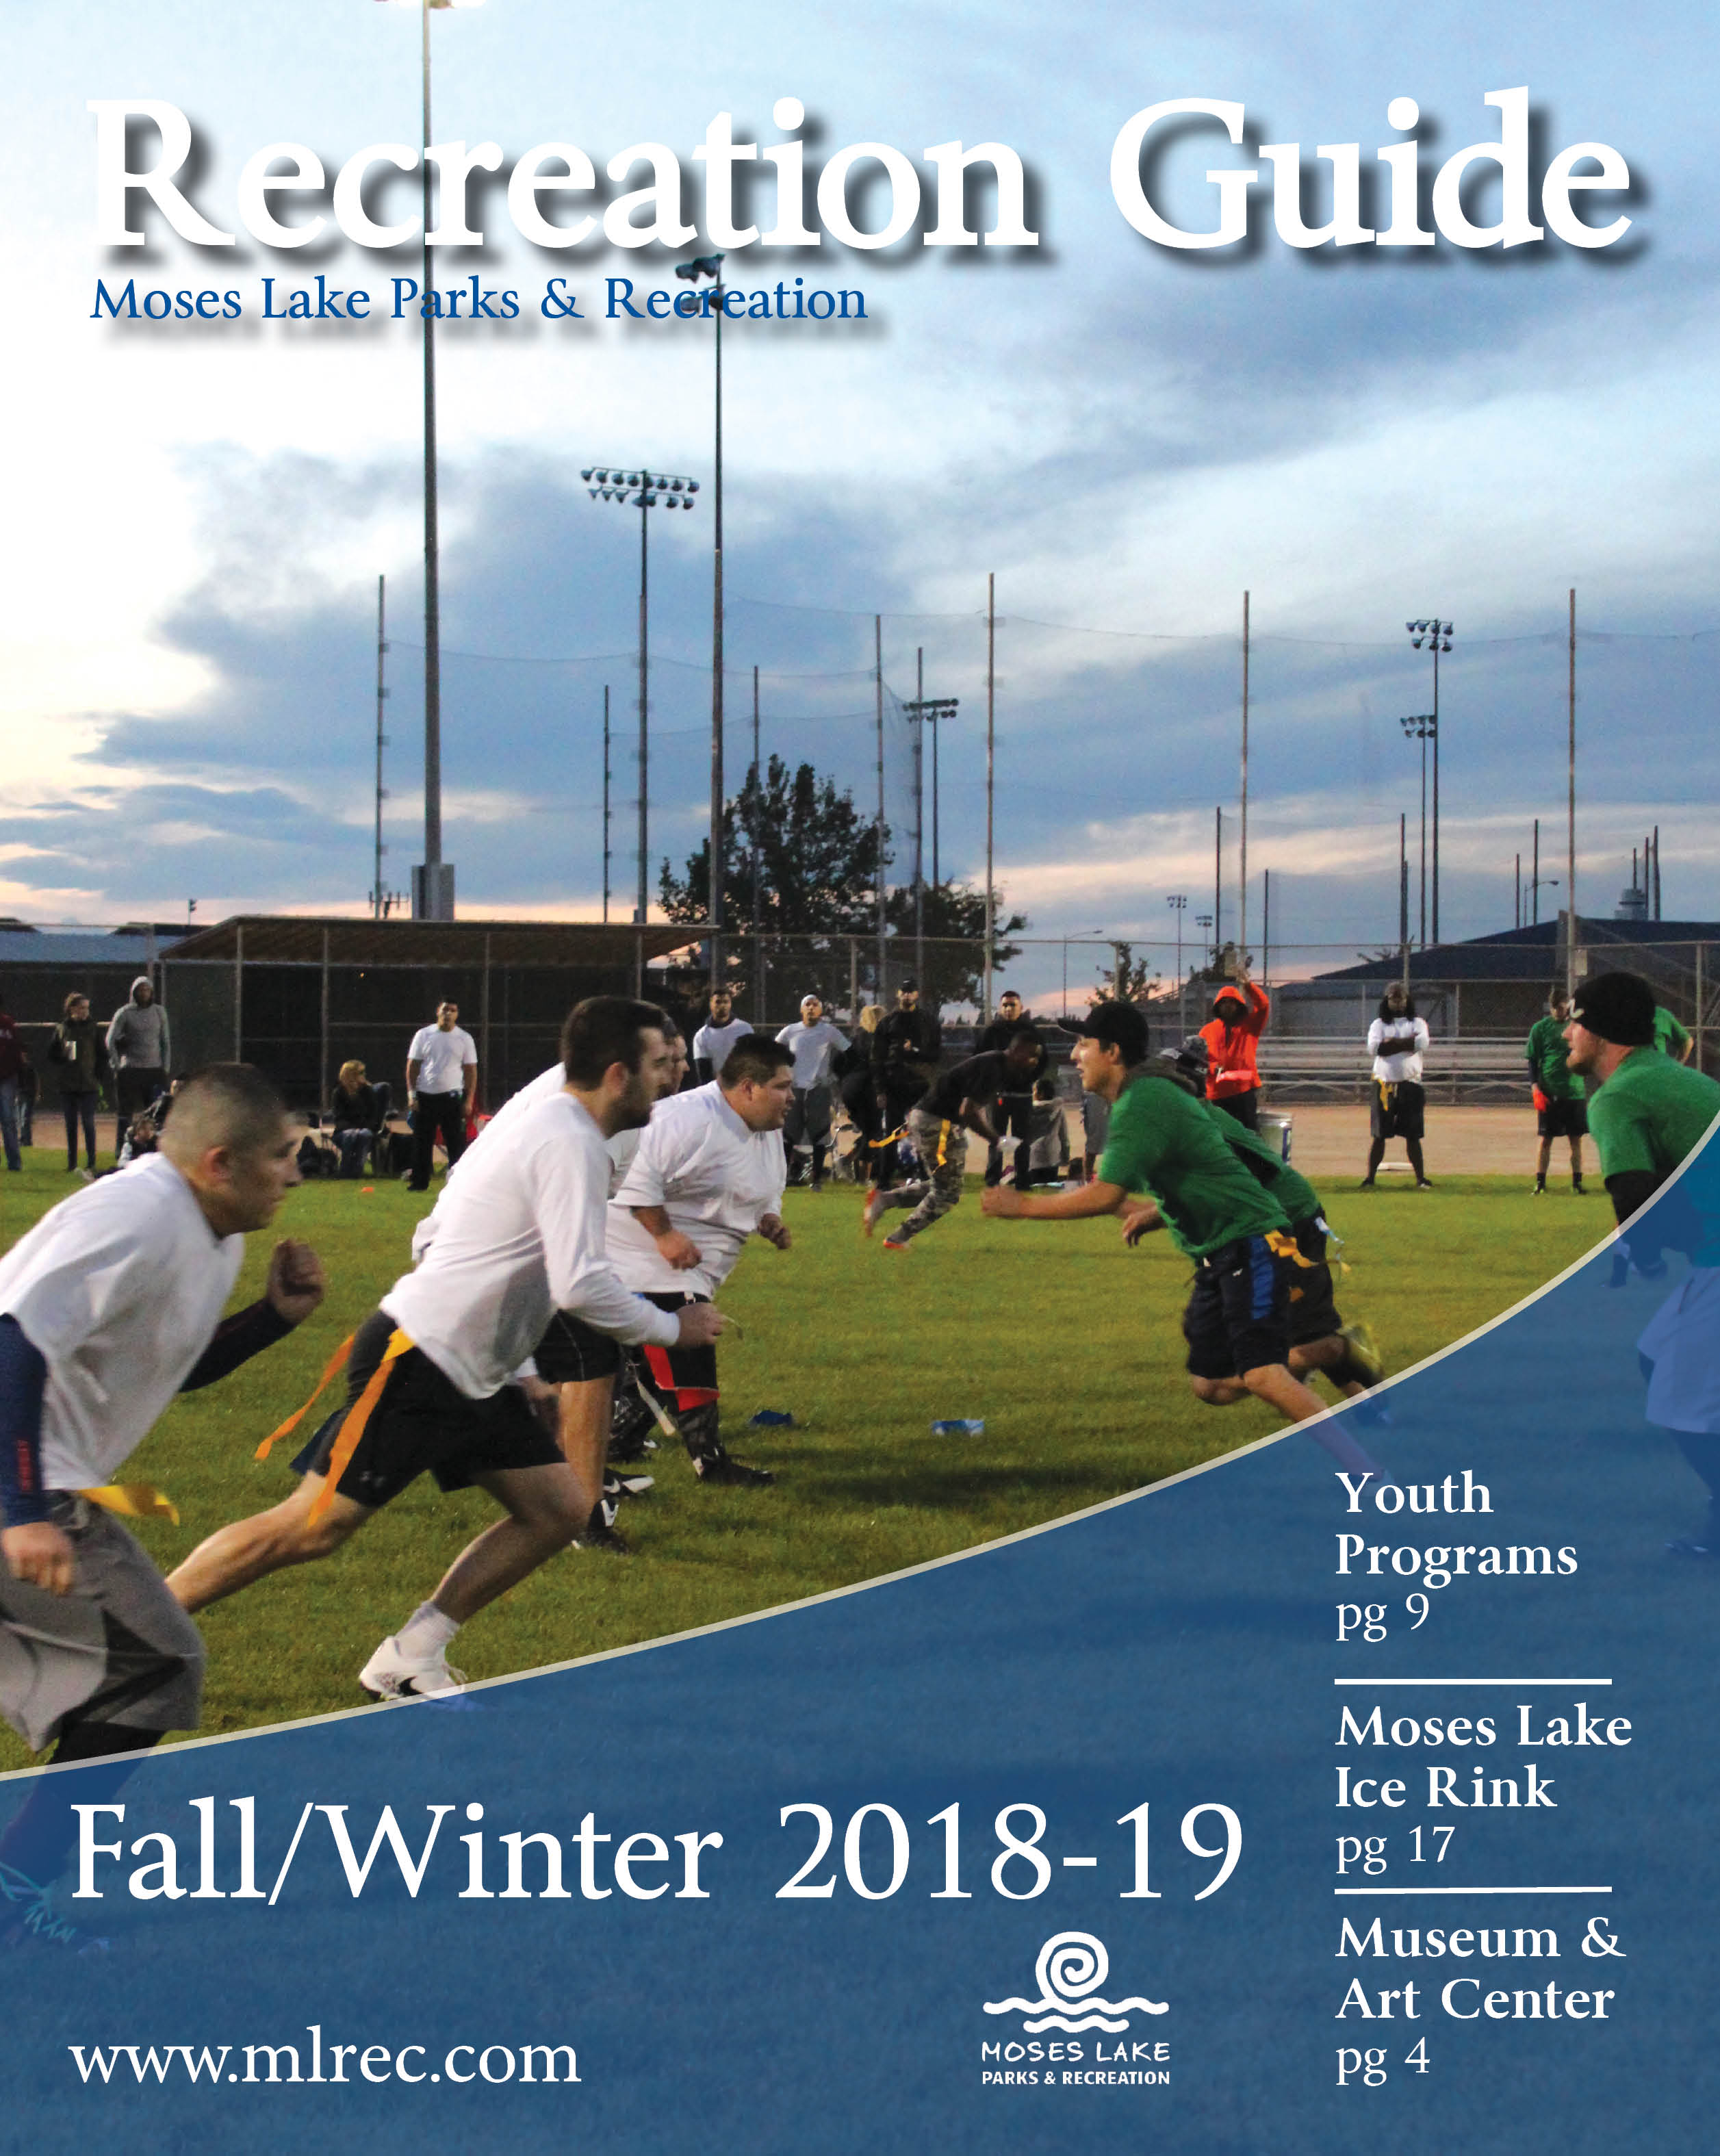 2018 to 2019 Winter Guide Cover